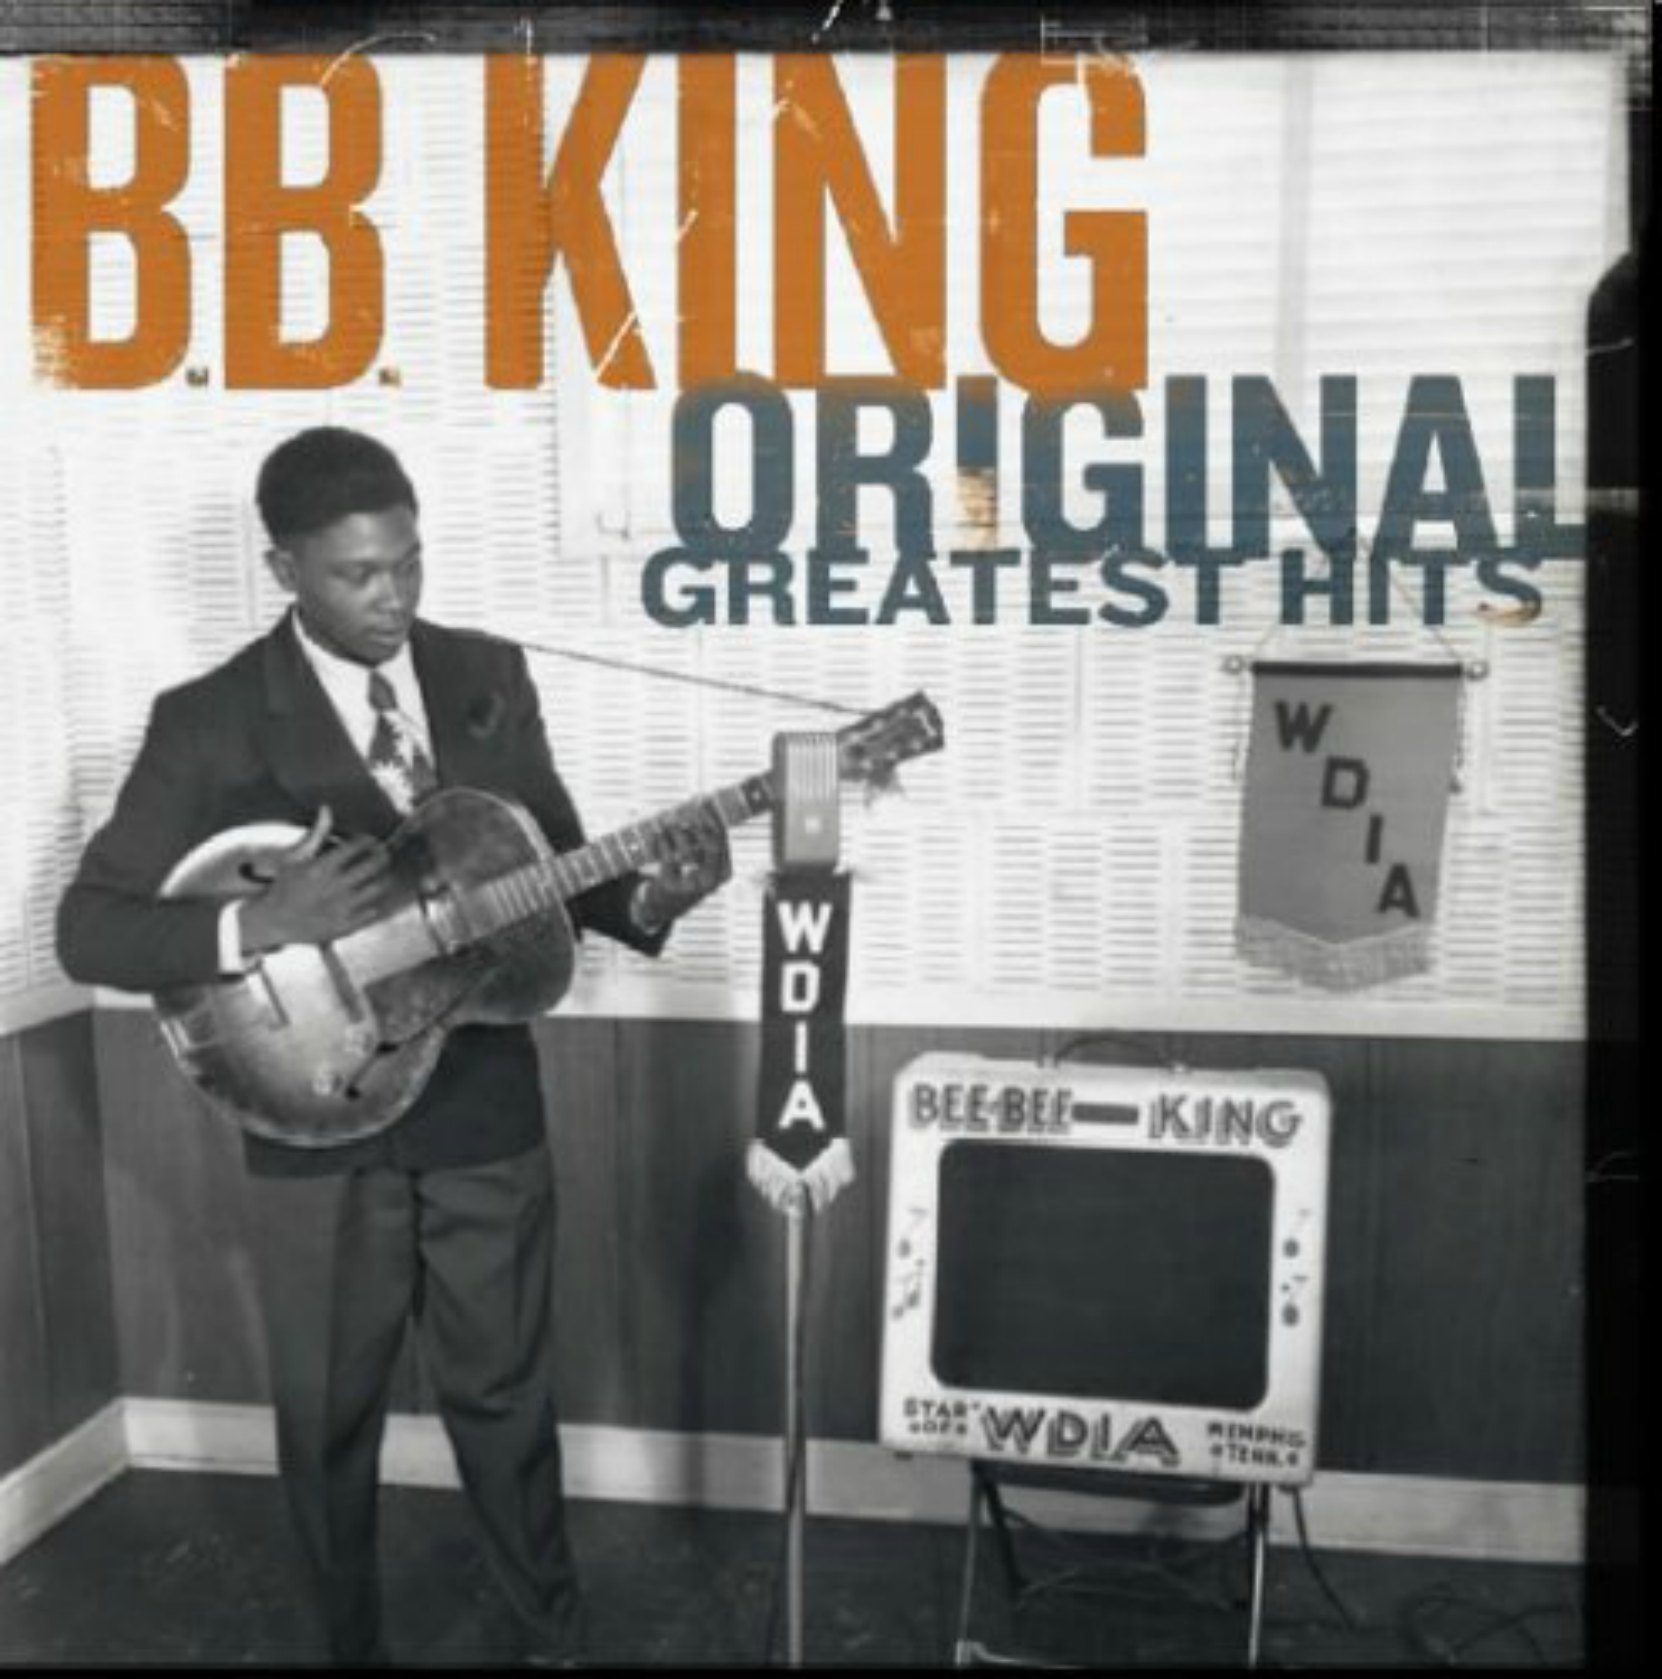 CD cover, Original Greatest Hits by B.B. King